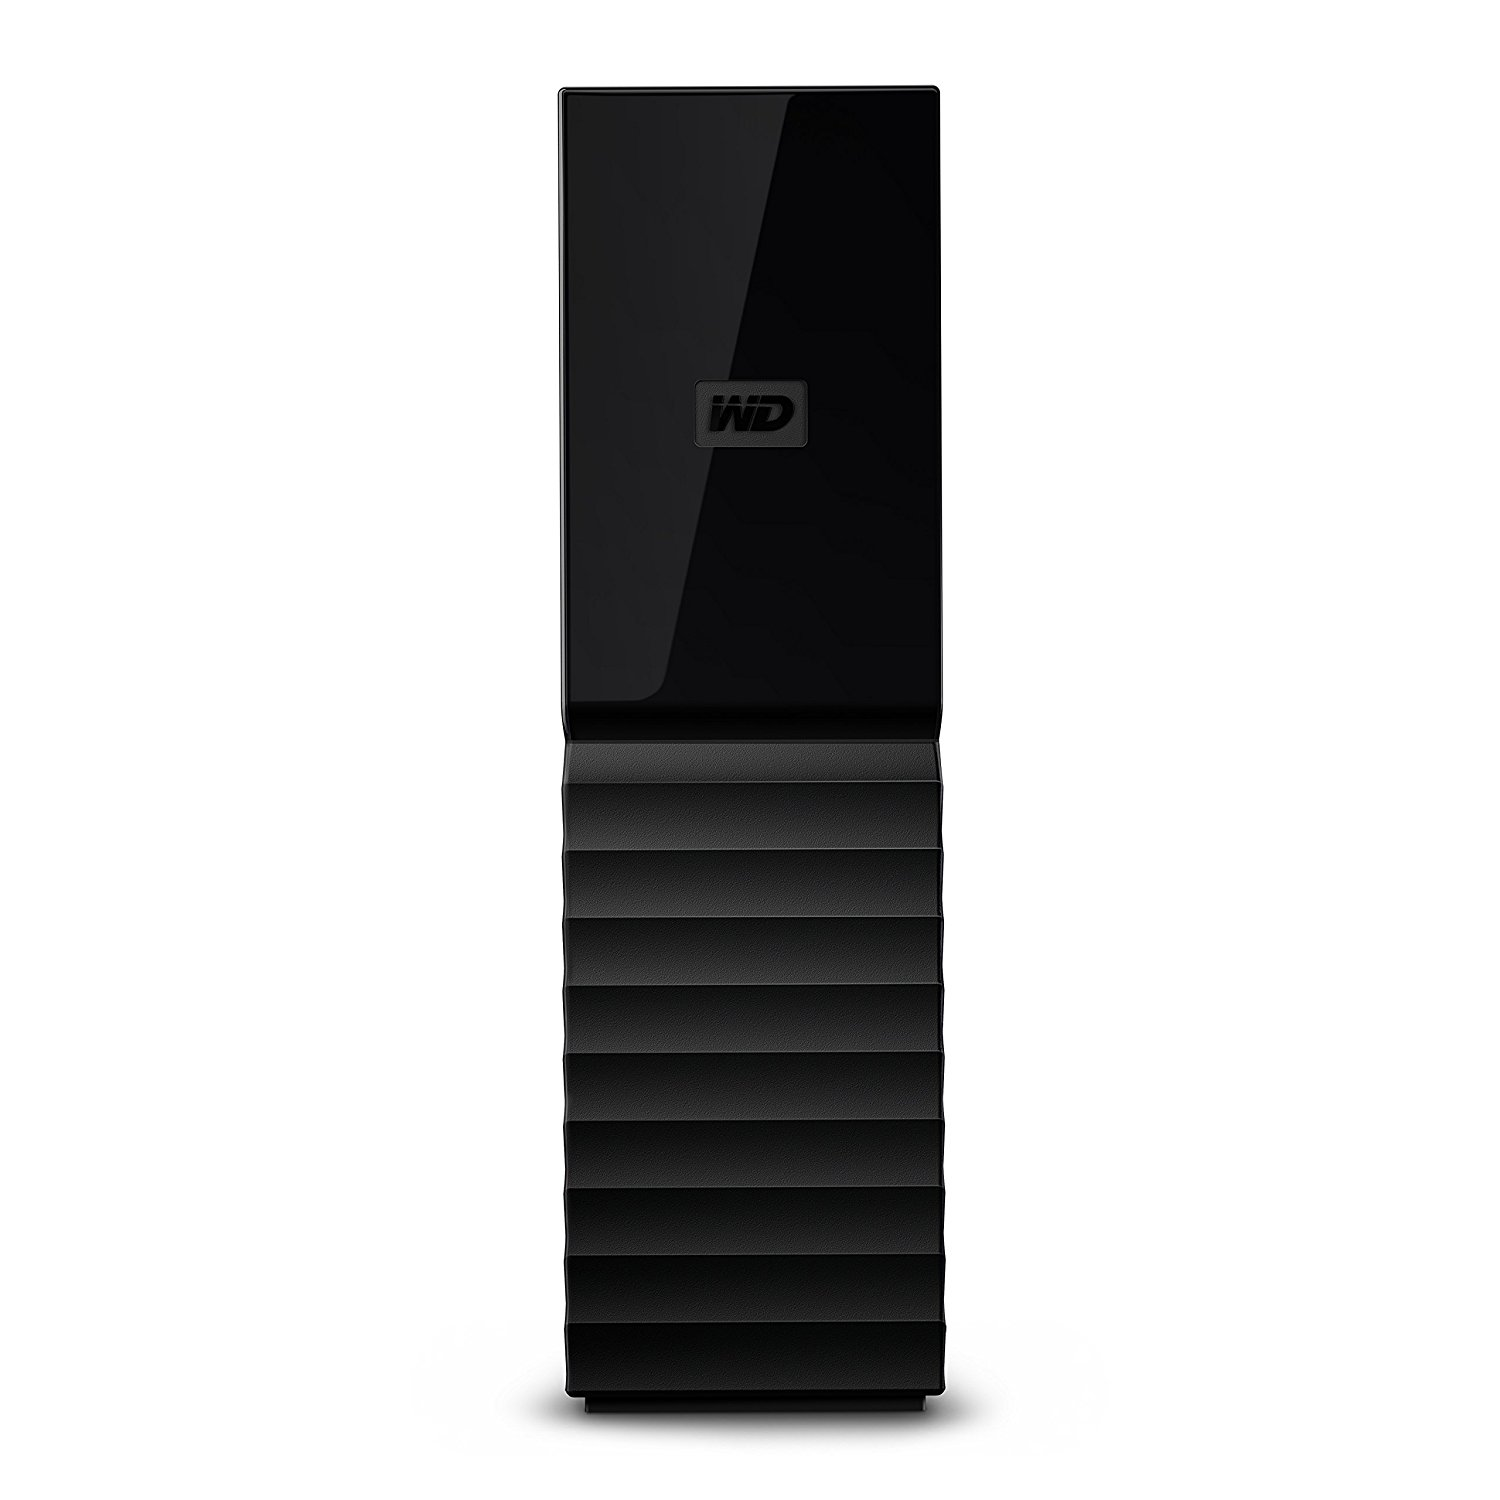 Western Digital Festplatte 8TB amazon